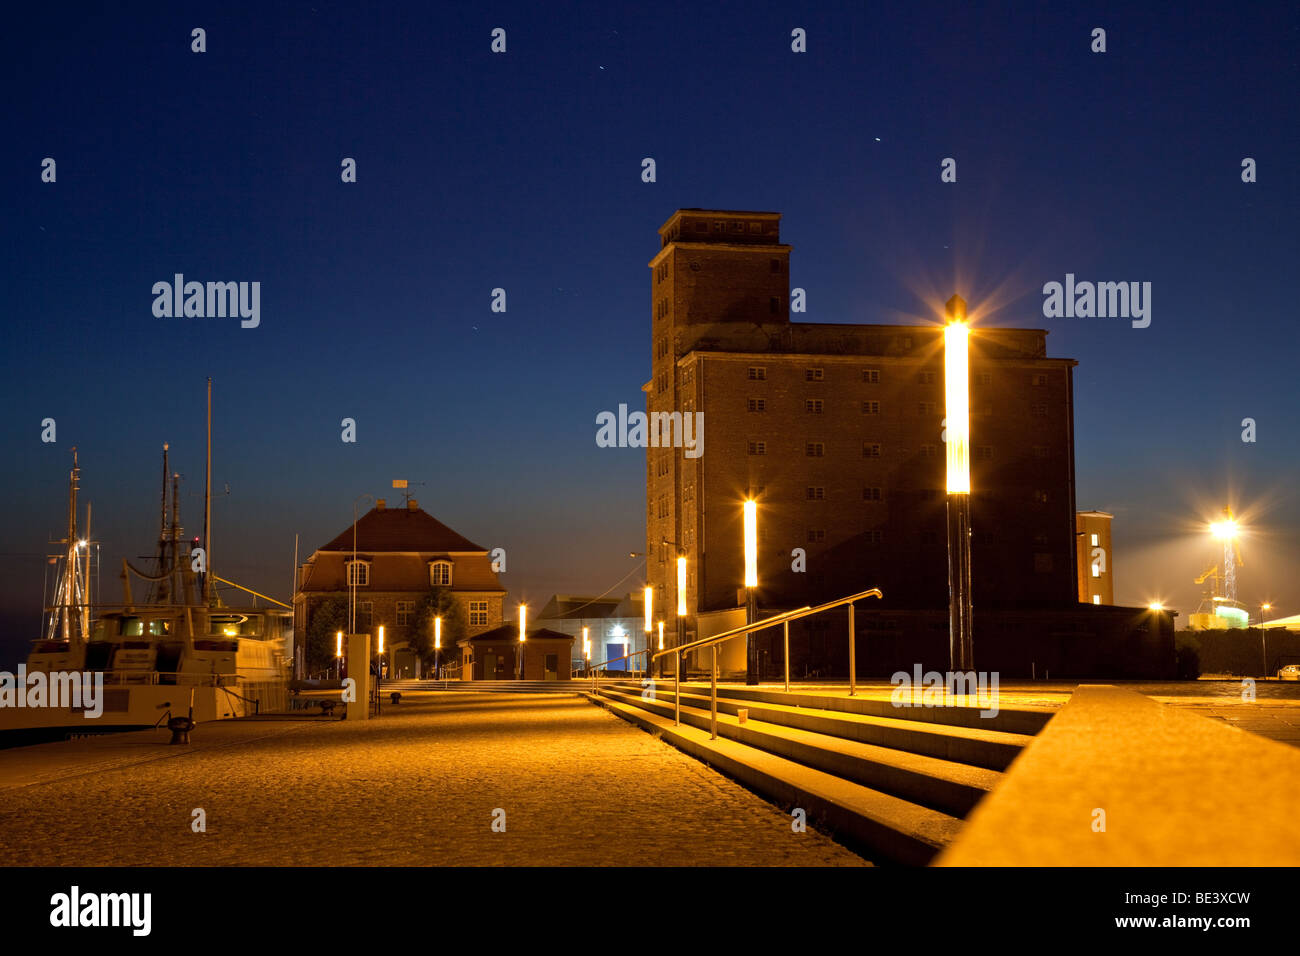 Storehouse in the old harbor of Wismar, Germany, by night - Stock Image